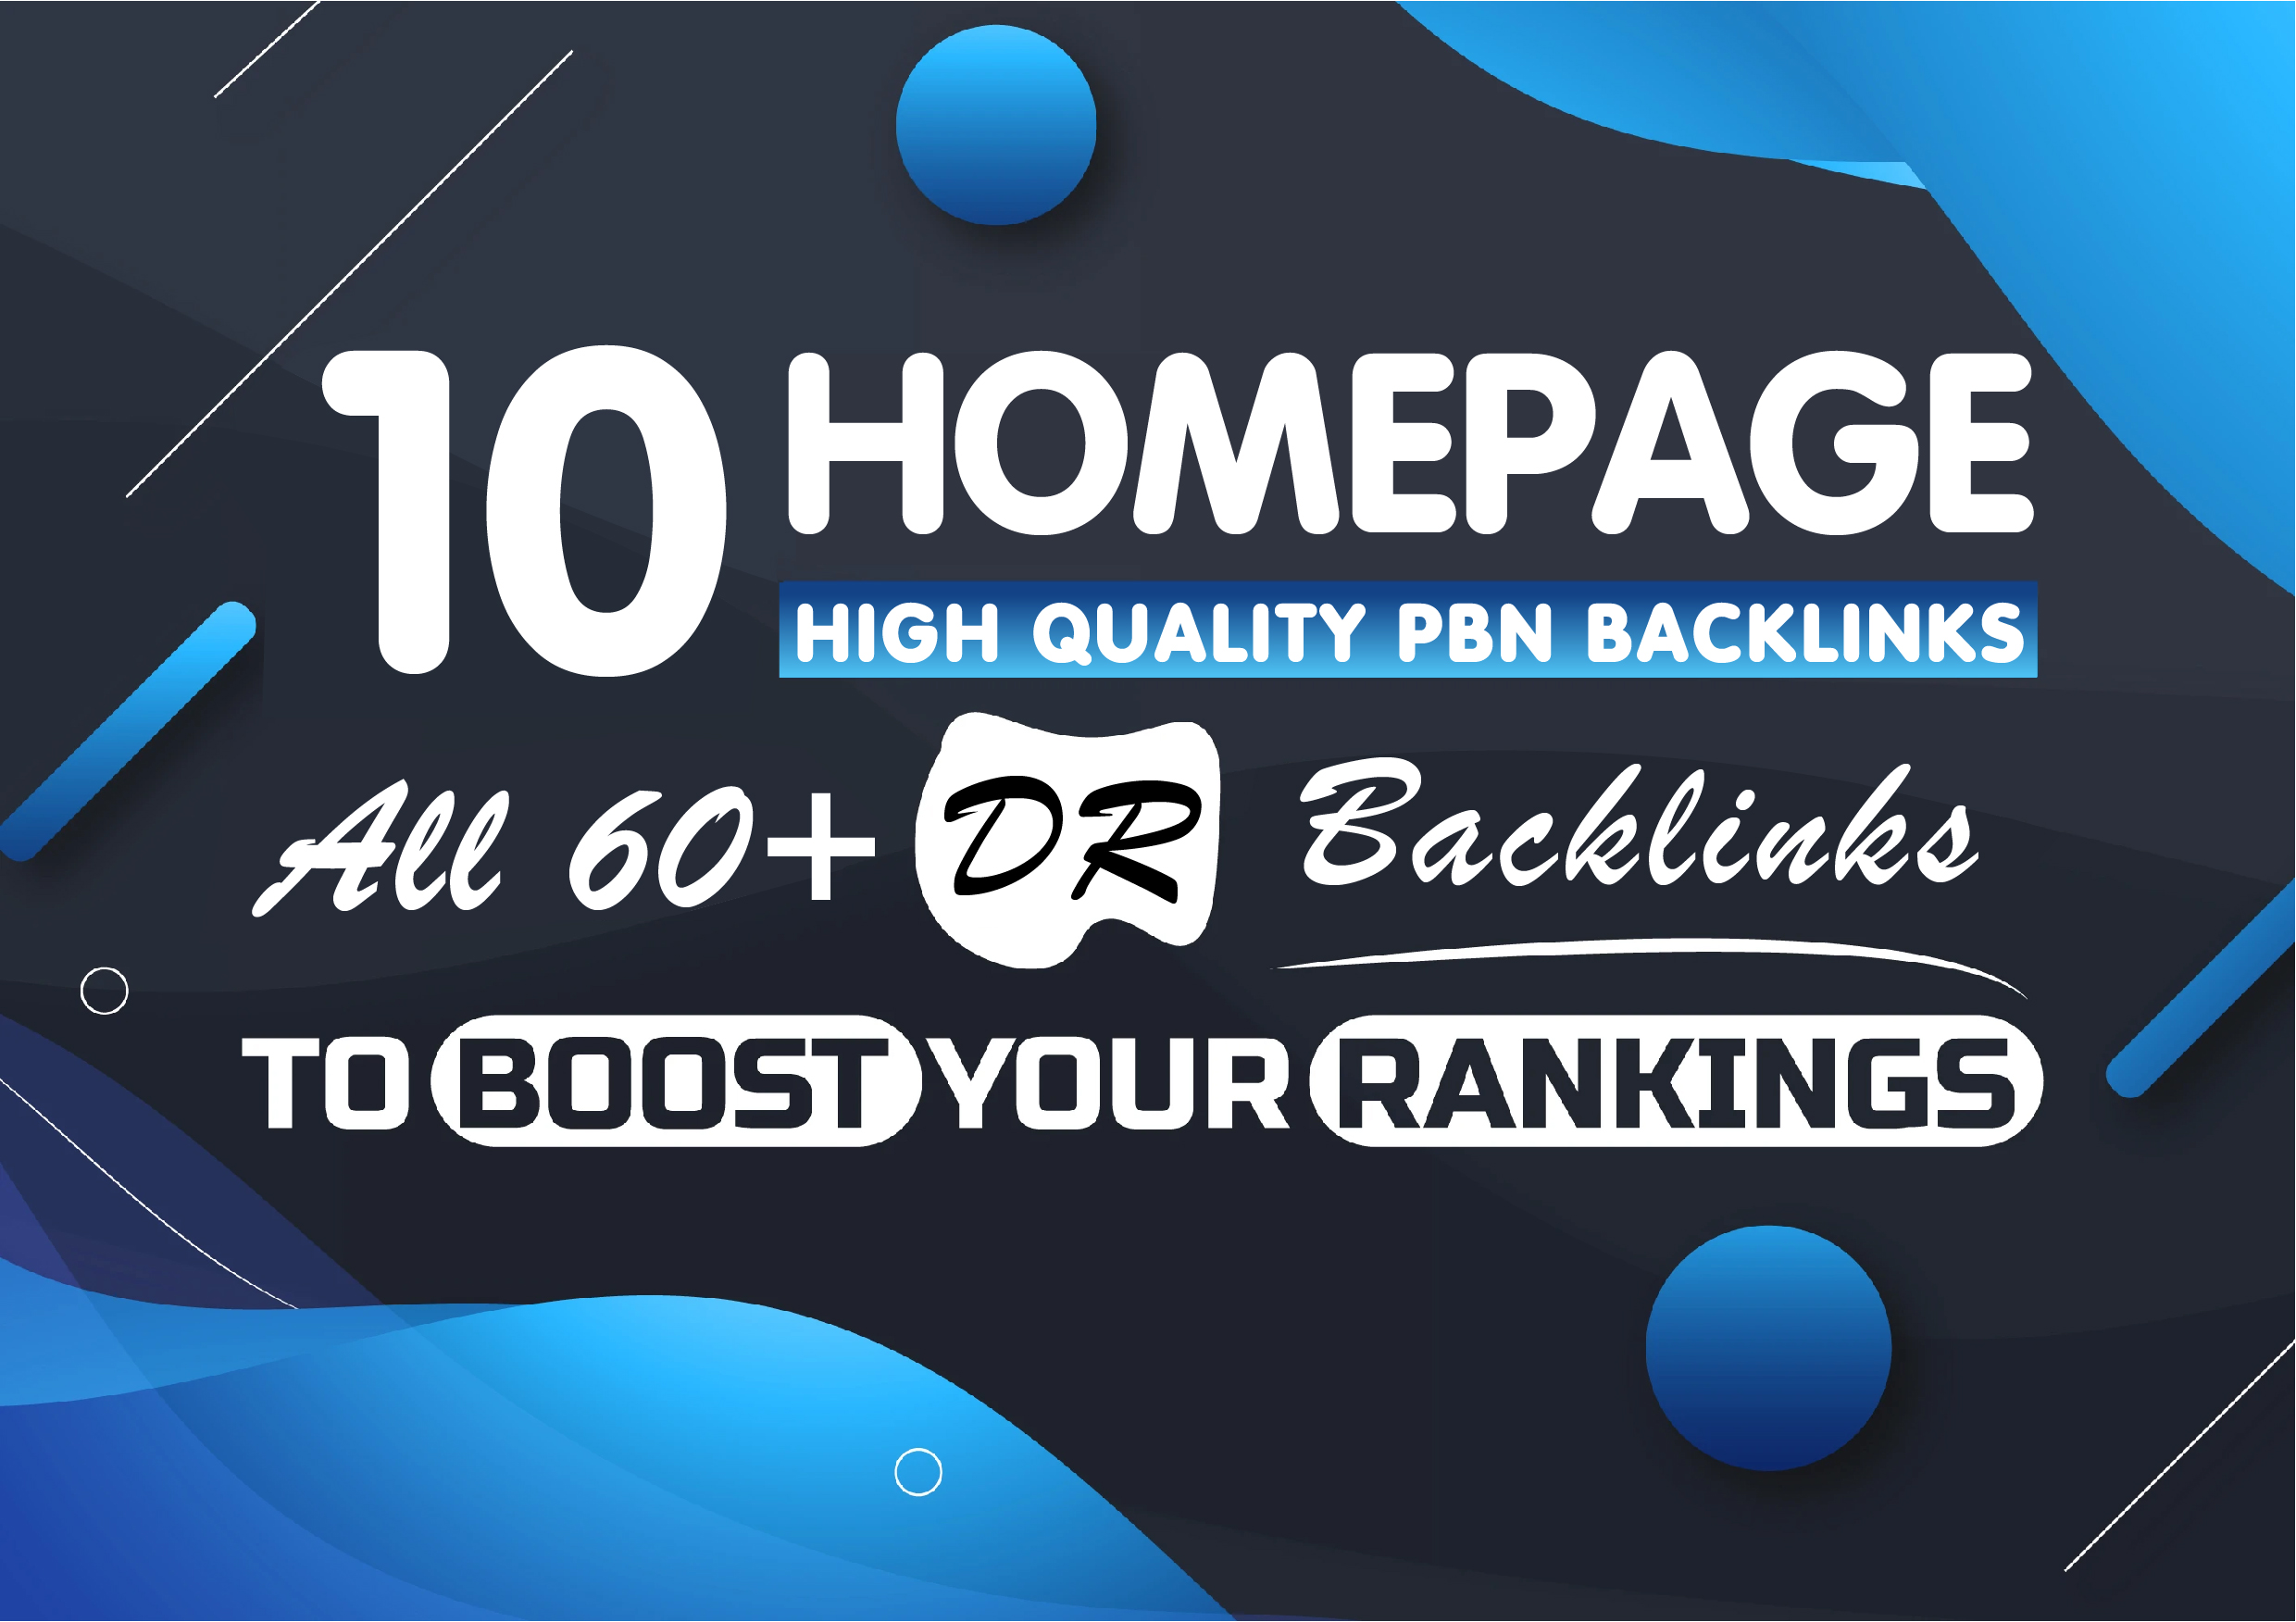 10 High Quality Homepage PBN Backlinks in DR 60+